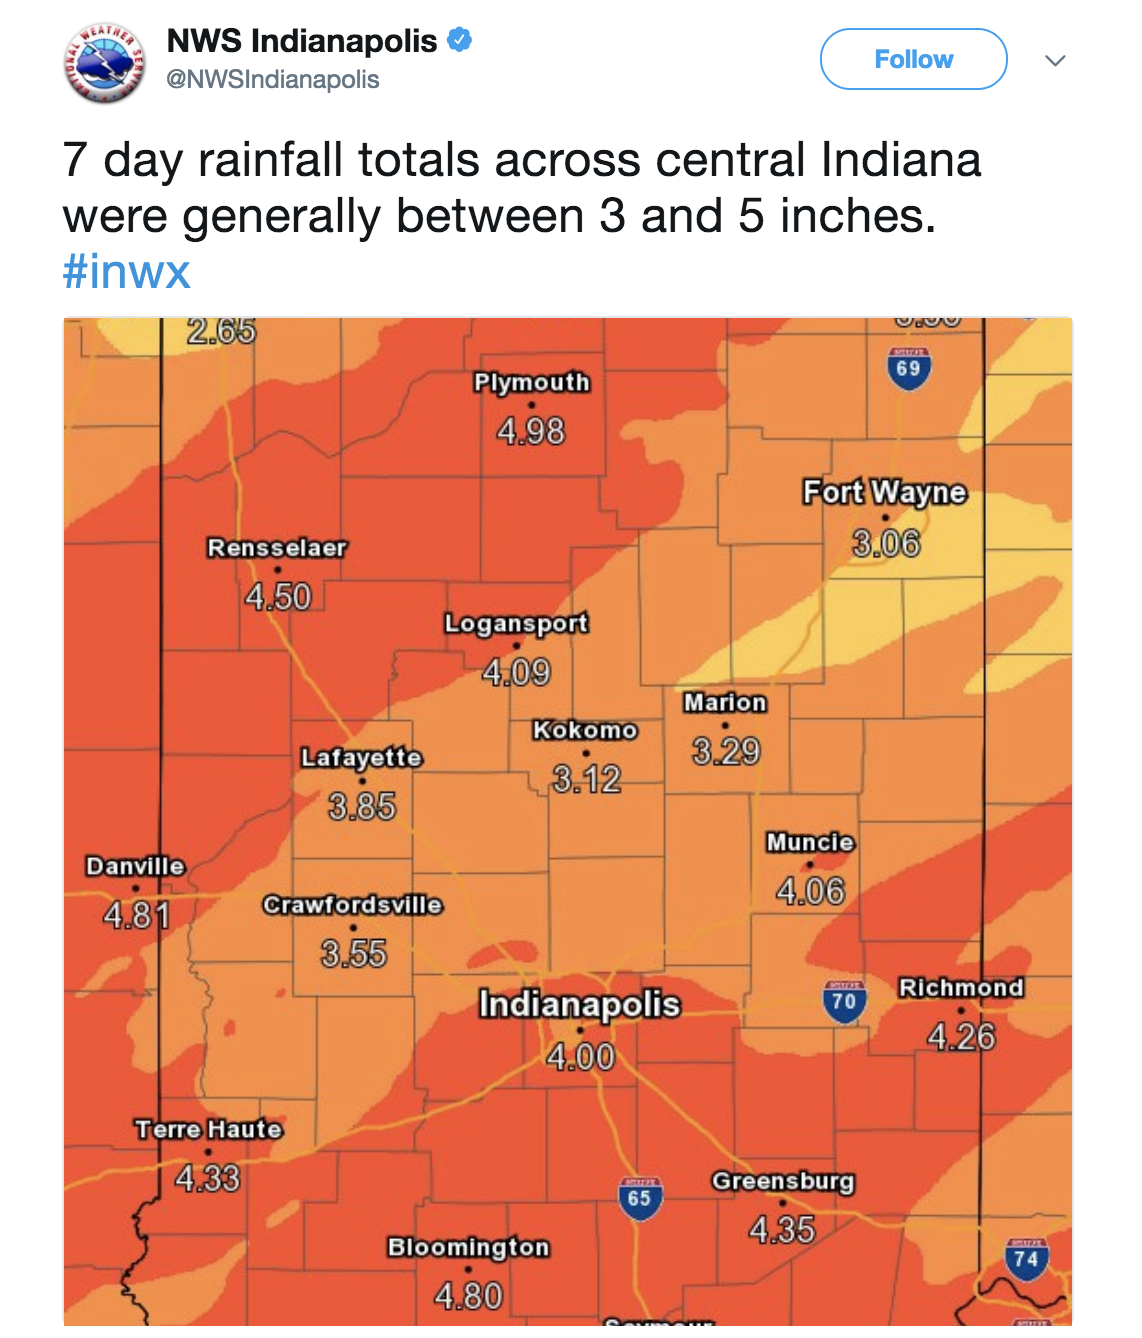 811 am est sun feb 25 2018 the national weather service in indianapolis has issued a flood warning for monroe county in south central indiana